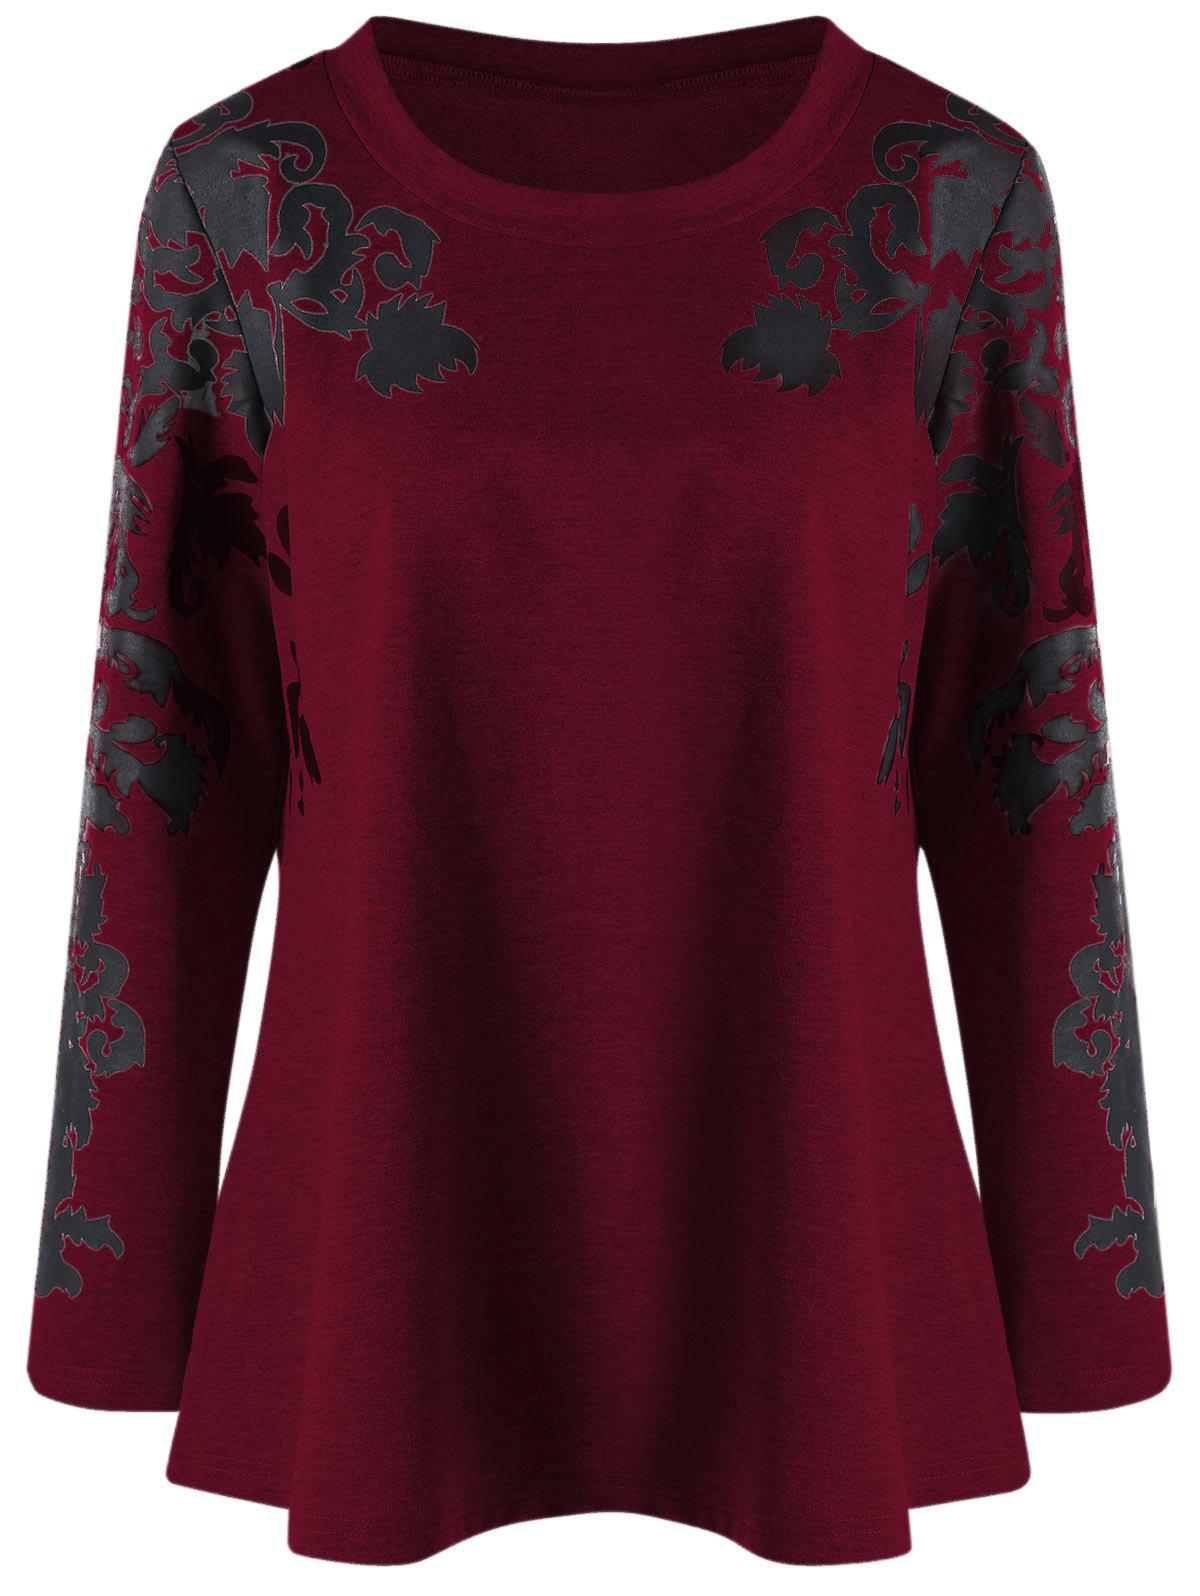 Raglan Sleeve Plus Size Print TopWOMEN<br><br>Size: 5XL; Color: DEEP RED; Material: Cotton Blends,Polyester,Spandex; Shirt Length: Regular; Sleeve Length: Full; Collar: Round Neck; Style: Casual; Season: Fall,Spring; Pattern Type: Print; Weight: 0.3910kg; Package Contents: 1 x Top;